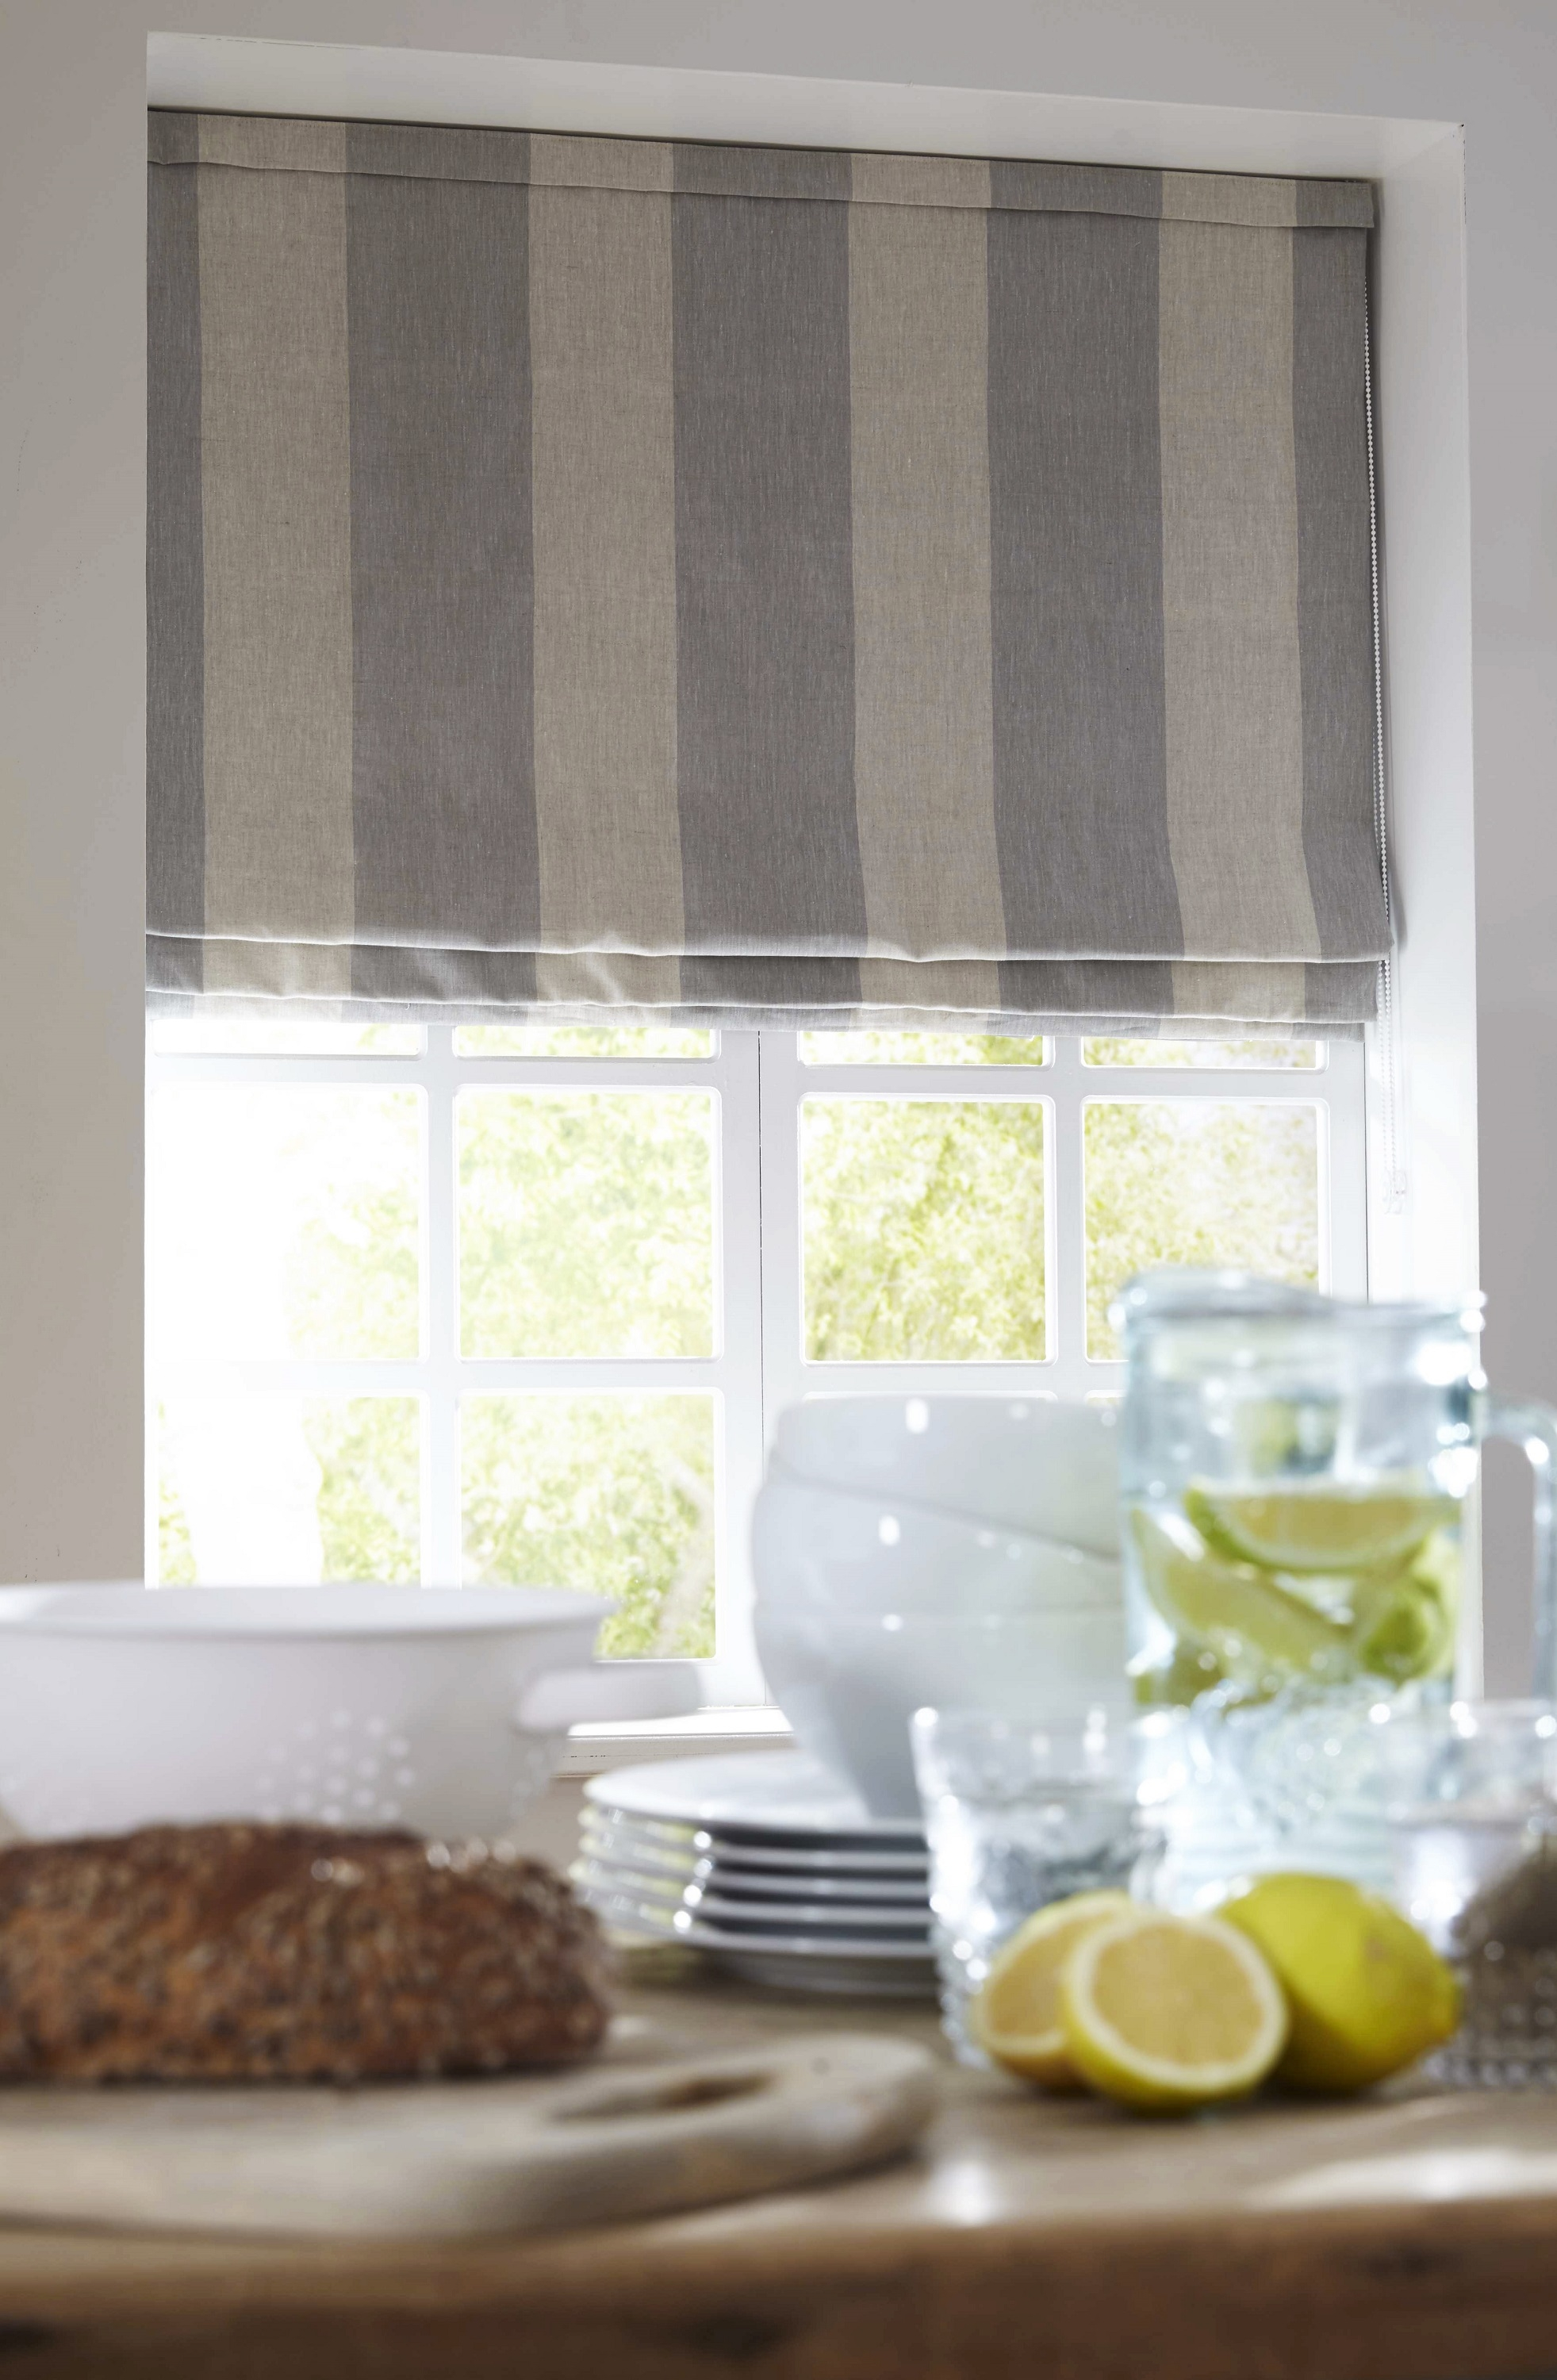 Blue And White Striped Country Kitchen Roman Blind Made With Within Blue And White Striped Roman Blinds (Image 2 of 15)